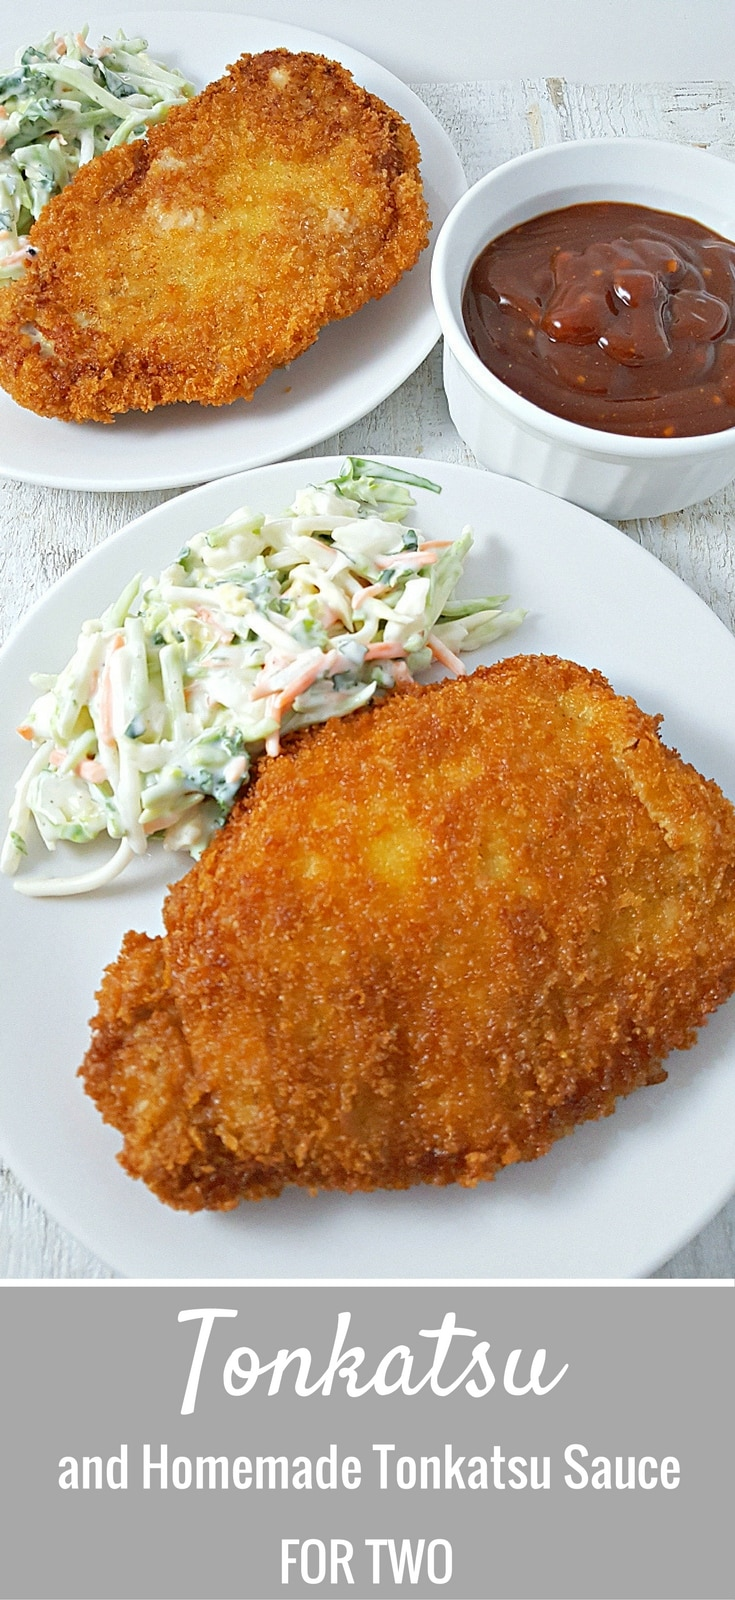 Tonkatsu and Homemade Tonkatsu Sauce for Two - This dish is super easy to make, delicious and satisfying. Tonkatsu is a Japanese dish which consists of a pork cutlet coated in Panko (Japanese bread crumbs) fried, then topped with Tonkatsu sauce. This homemade sauce is tangy and delicious. It is often served with shredded cabbage but we like it much better with broccoli slaw or coleslaw. You can also use chicken instead of pork using this same recipe. Great for dinner, lunch, or date night!